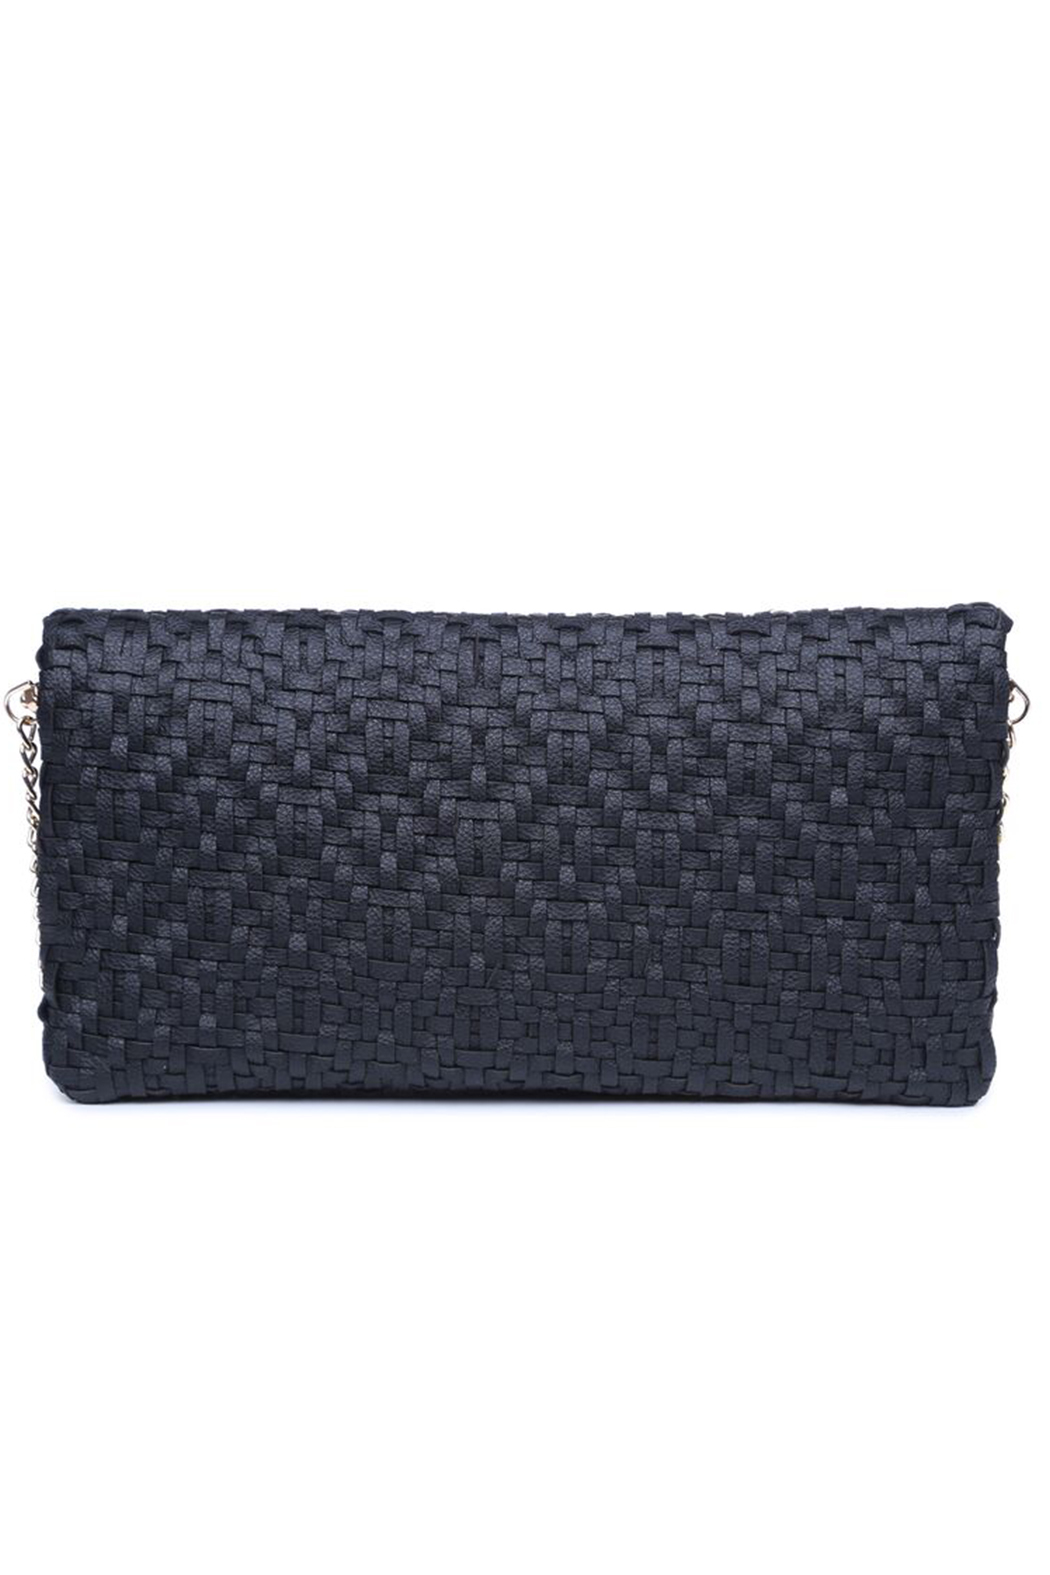 Urban Expressions Rooney Clutch with Adjustable C/B Strap - Back Cropped Image